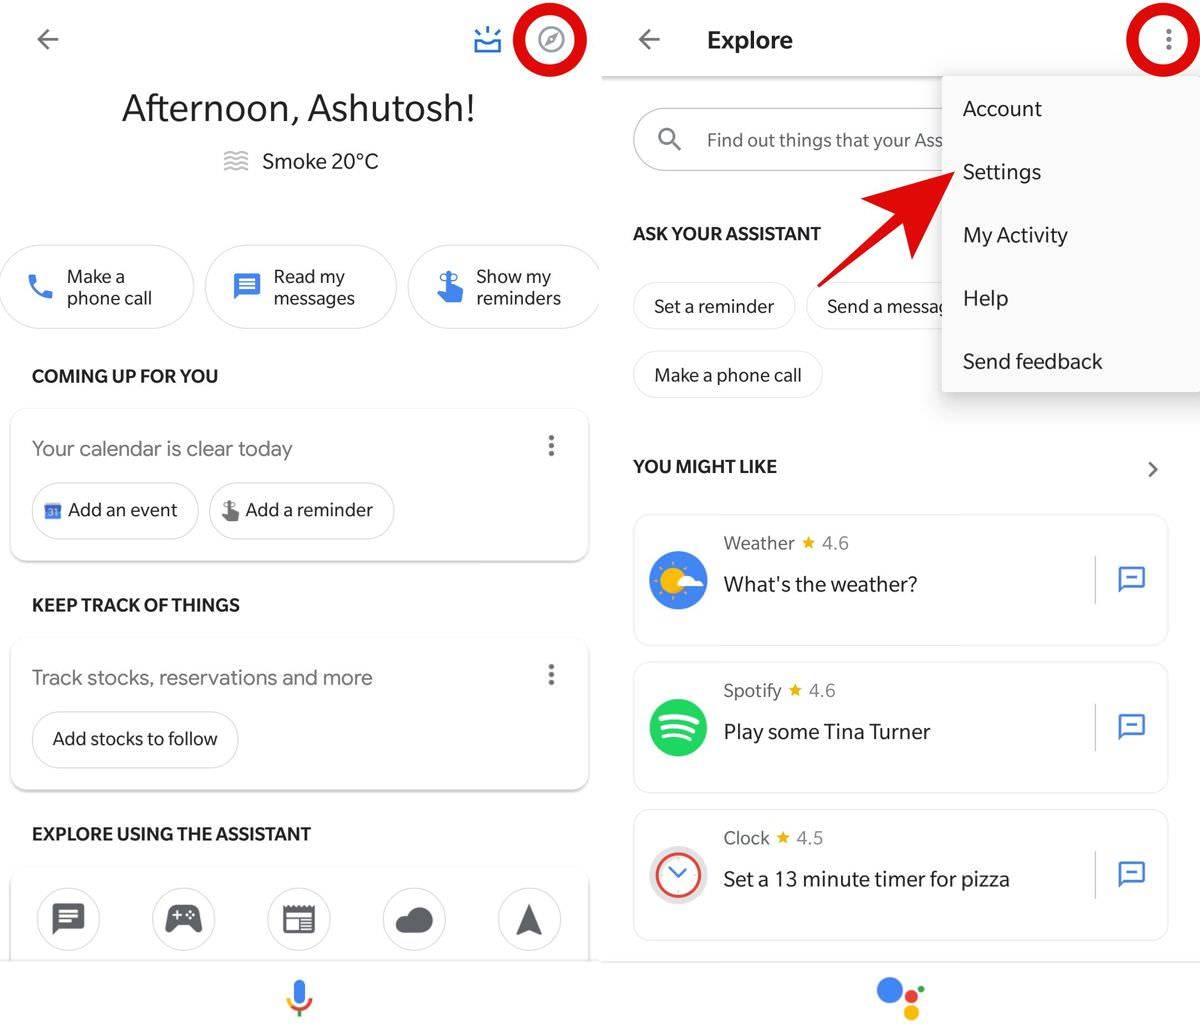 Access the settings of Google Assistant